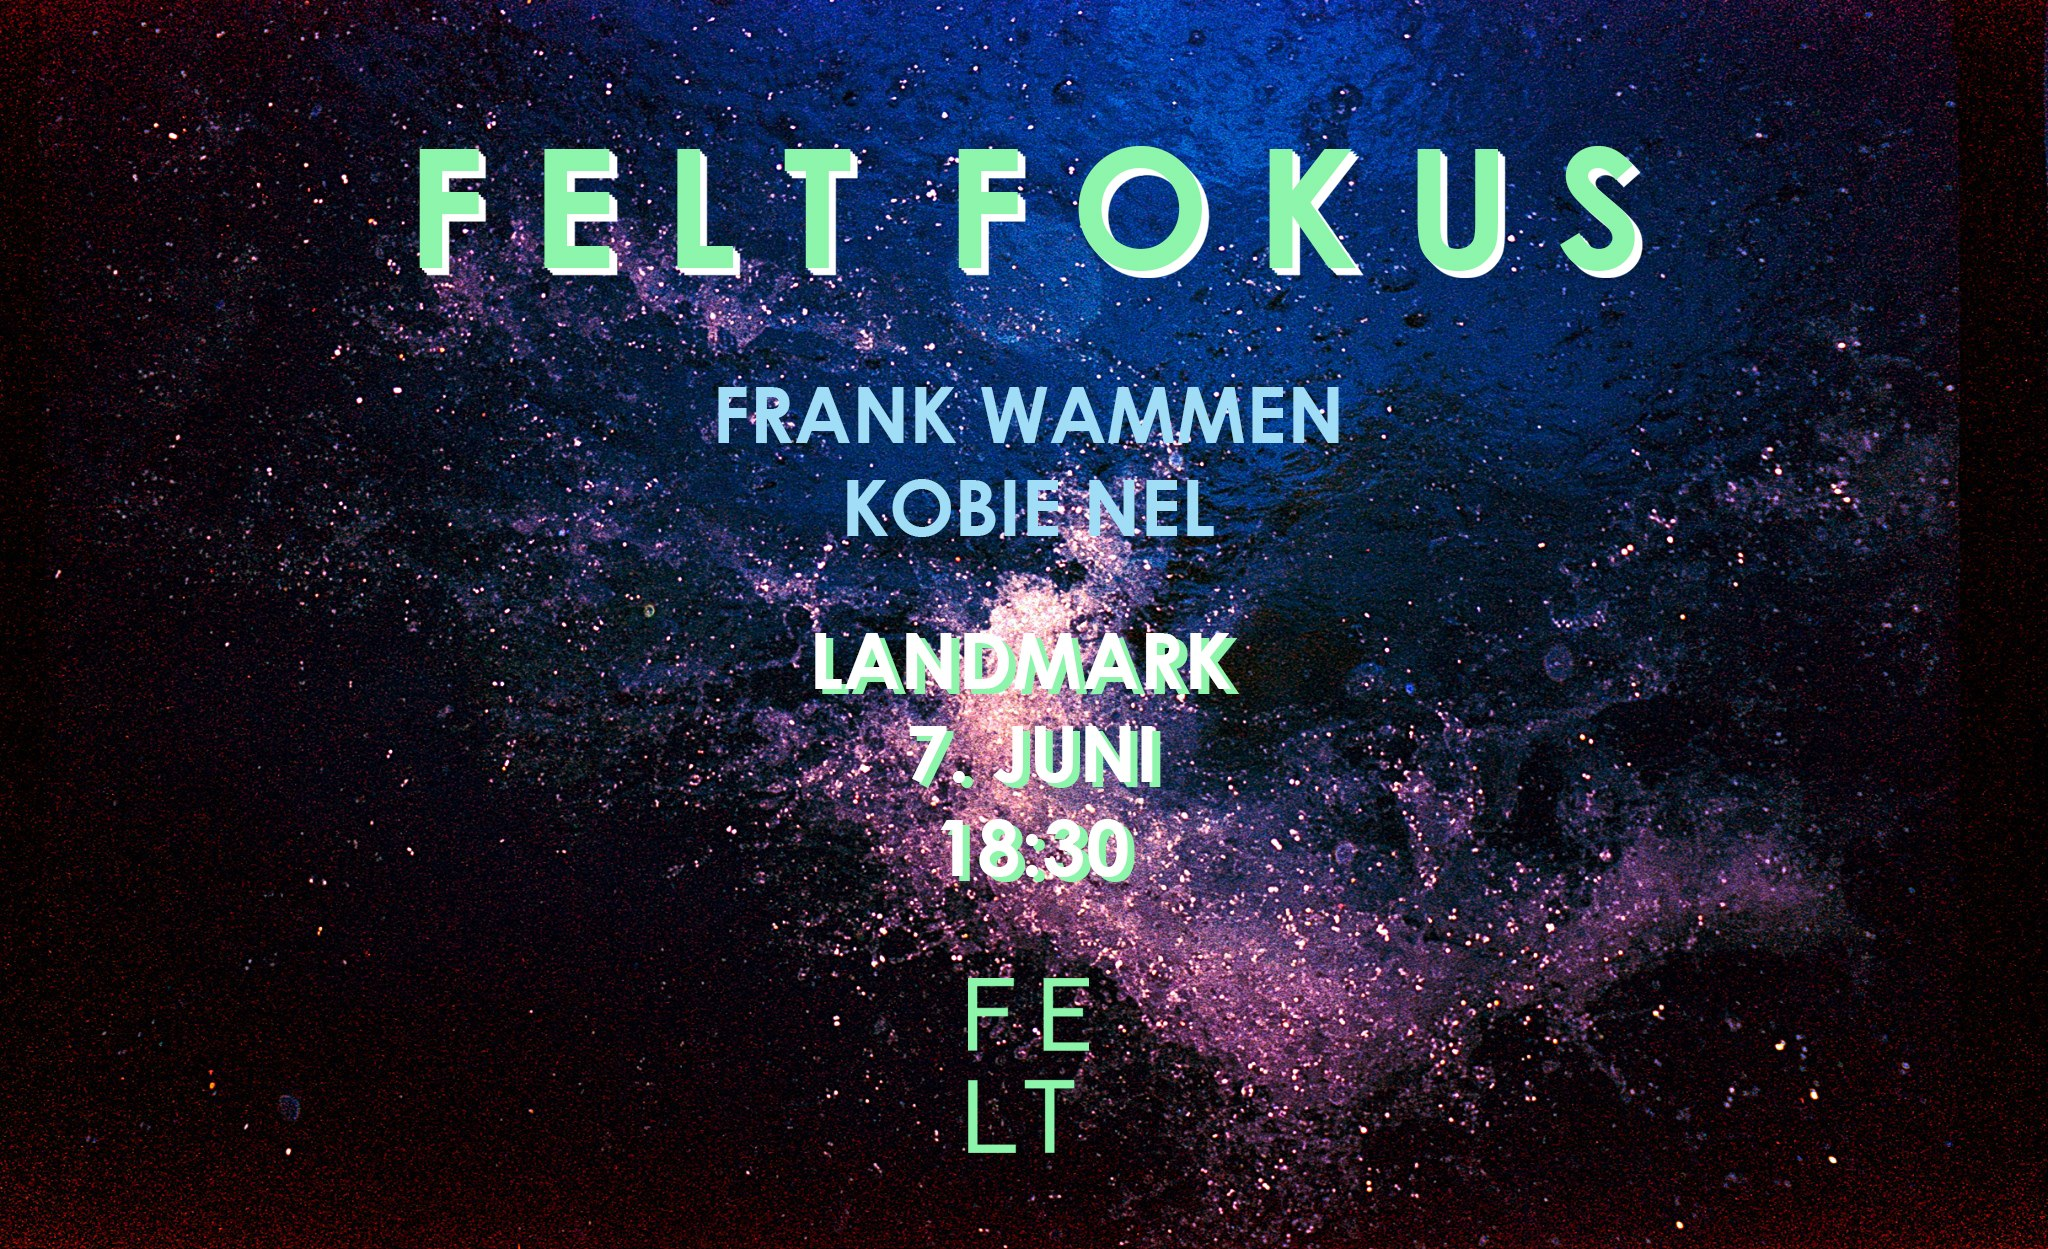 To be announced – Felt Fokus #4